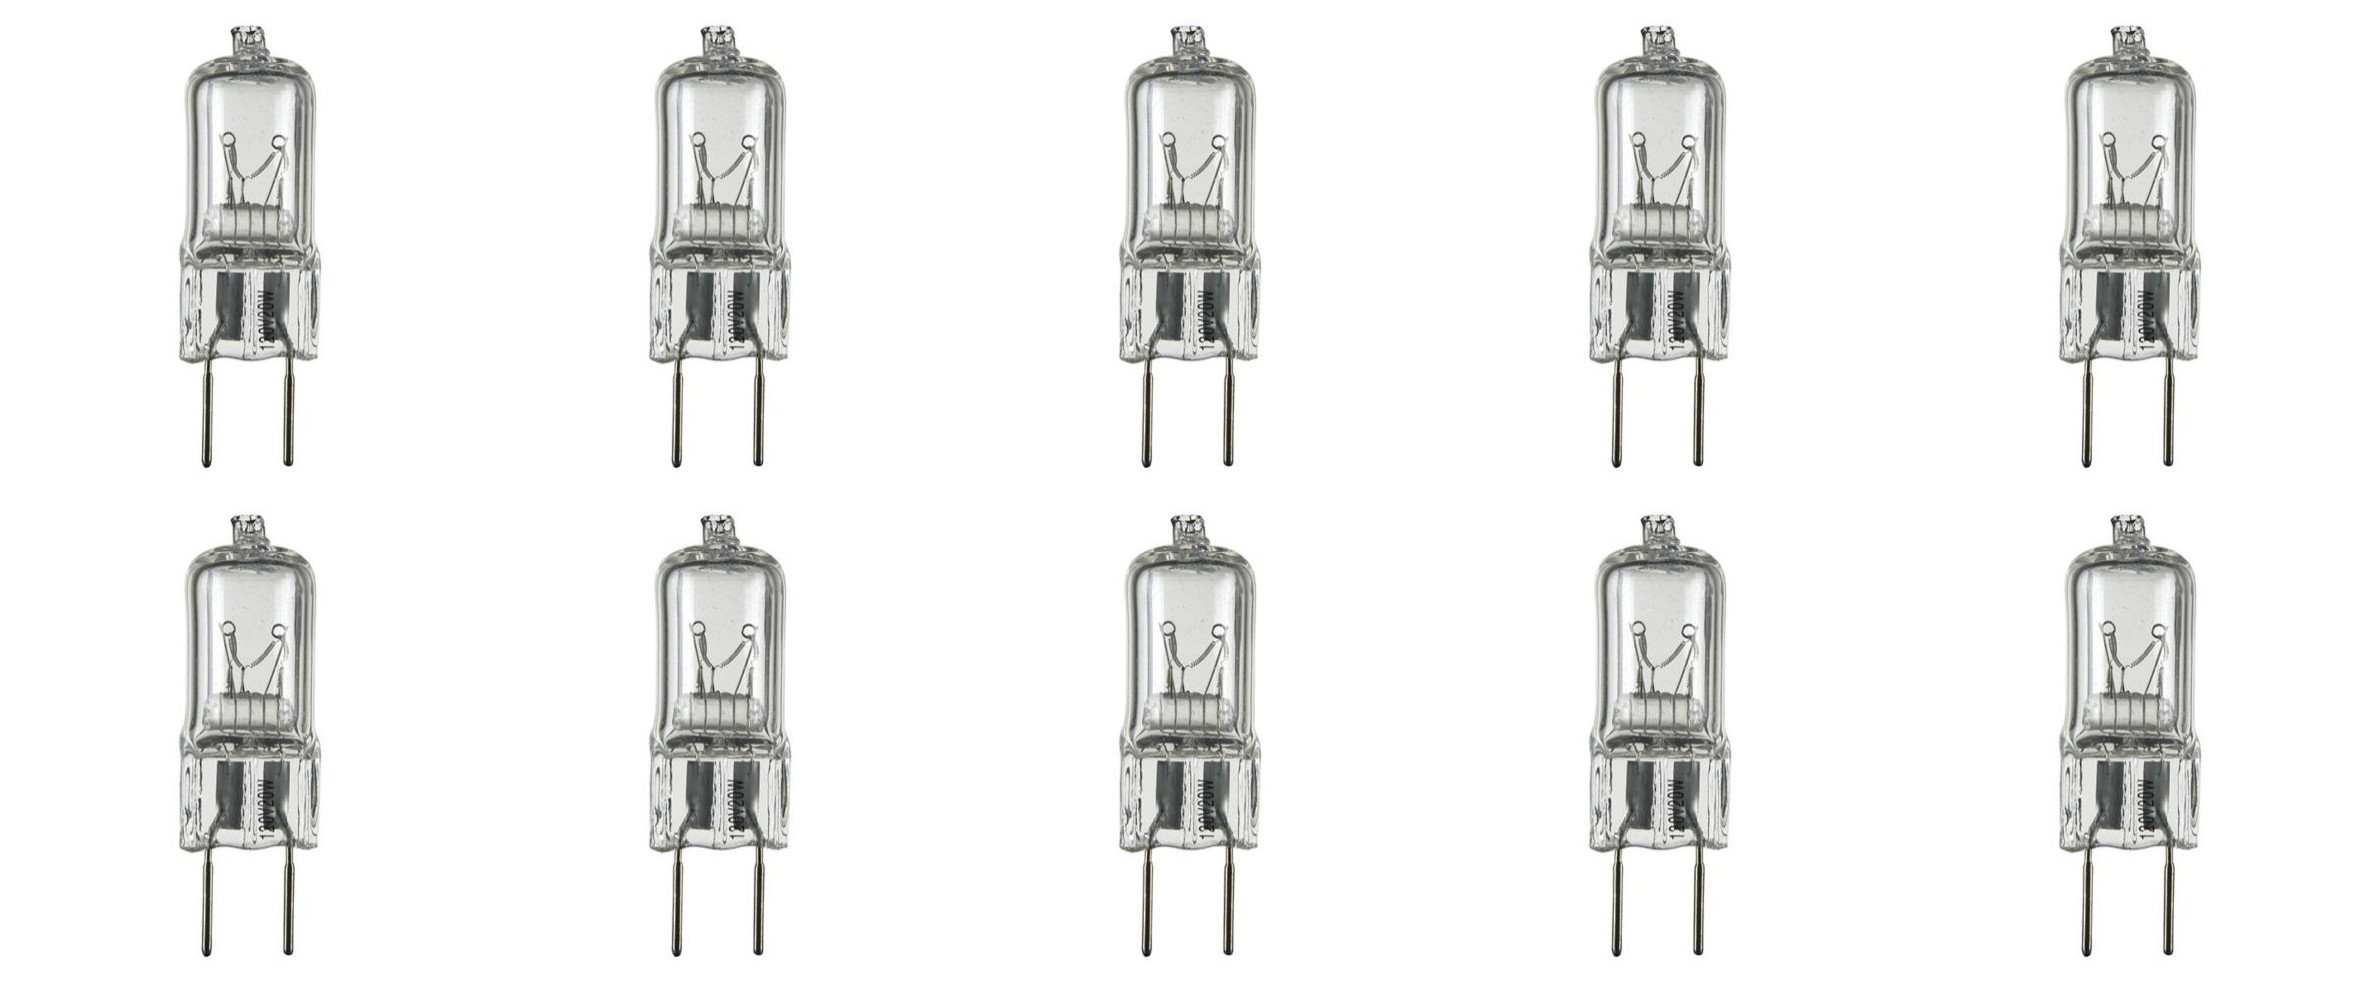 12vmonster 10 pack g8 20watt 120v halogen light bulbs jcd